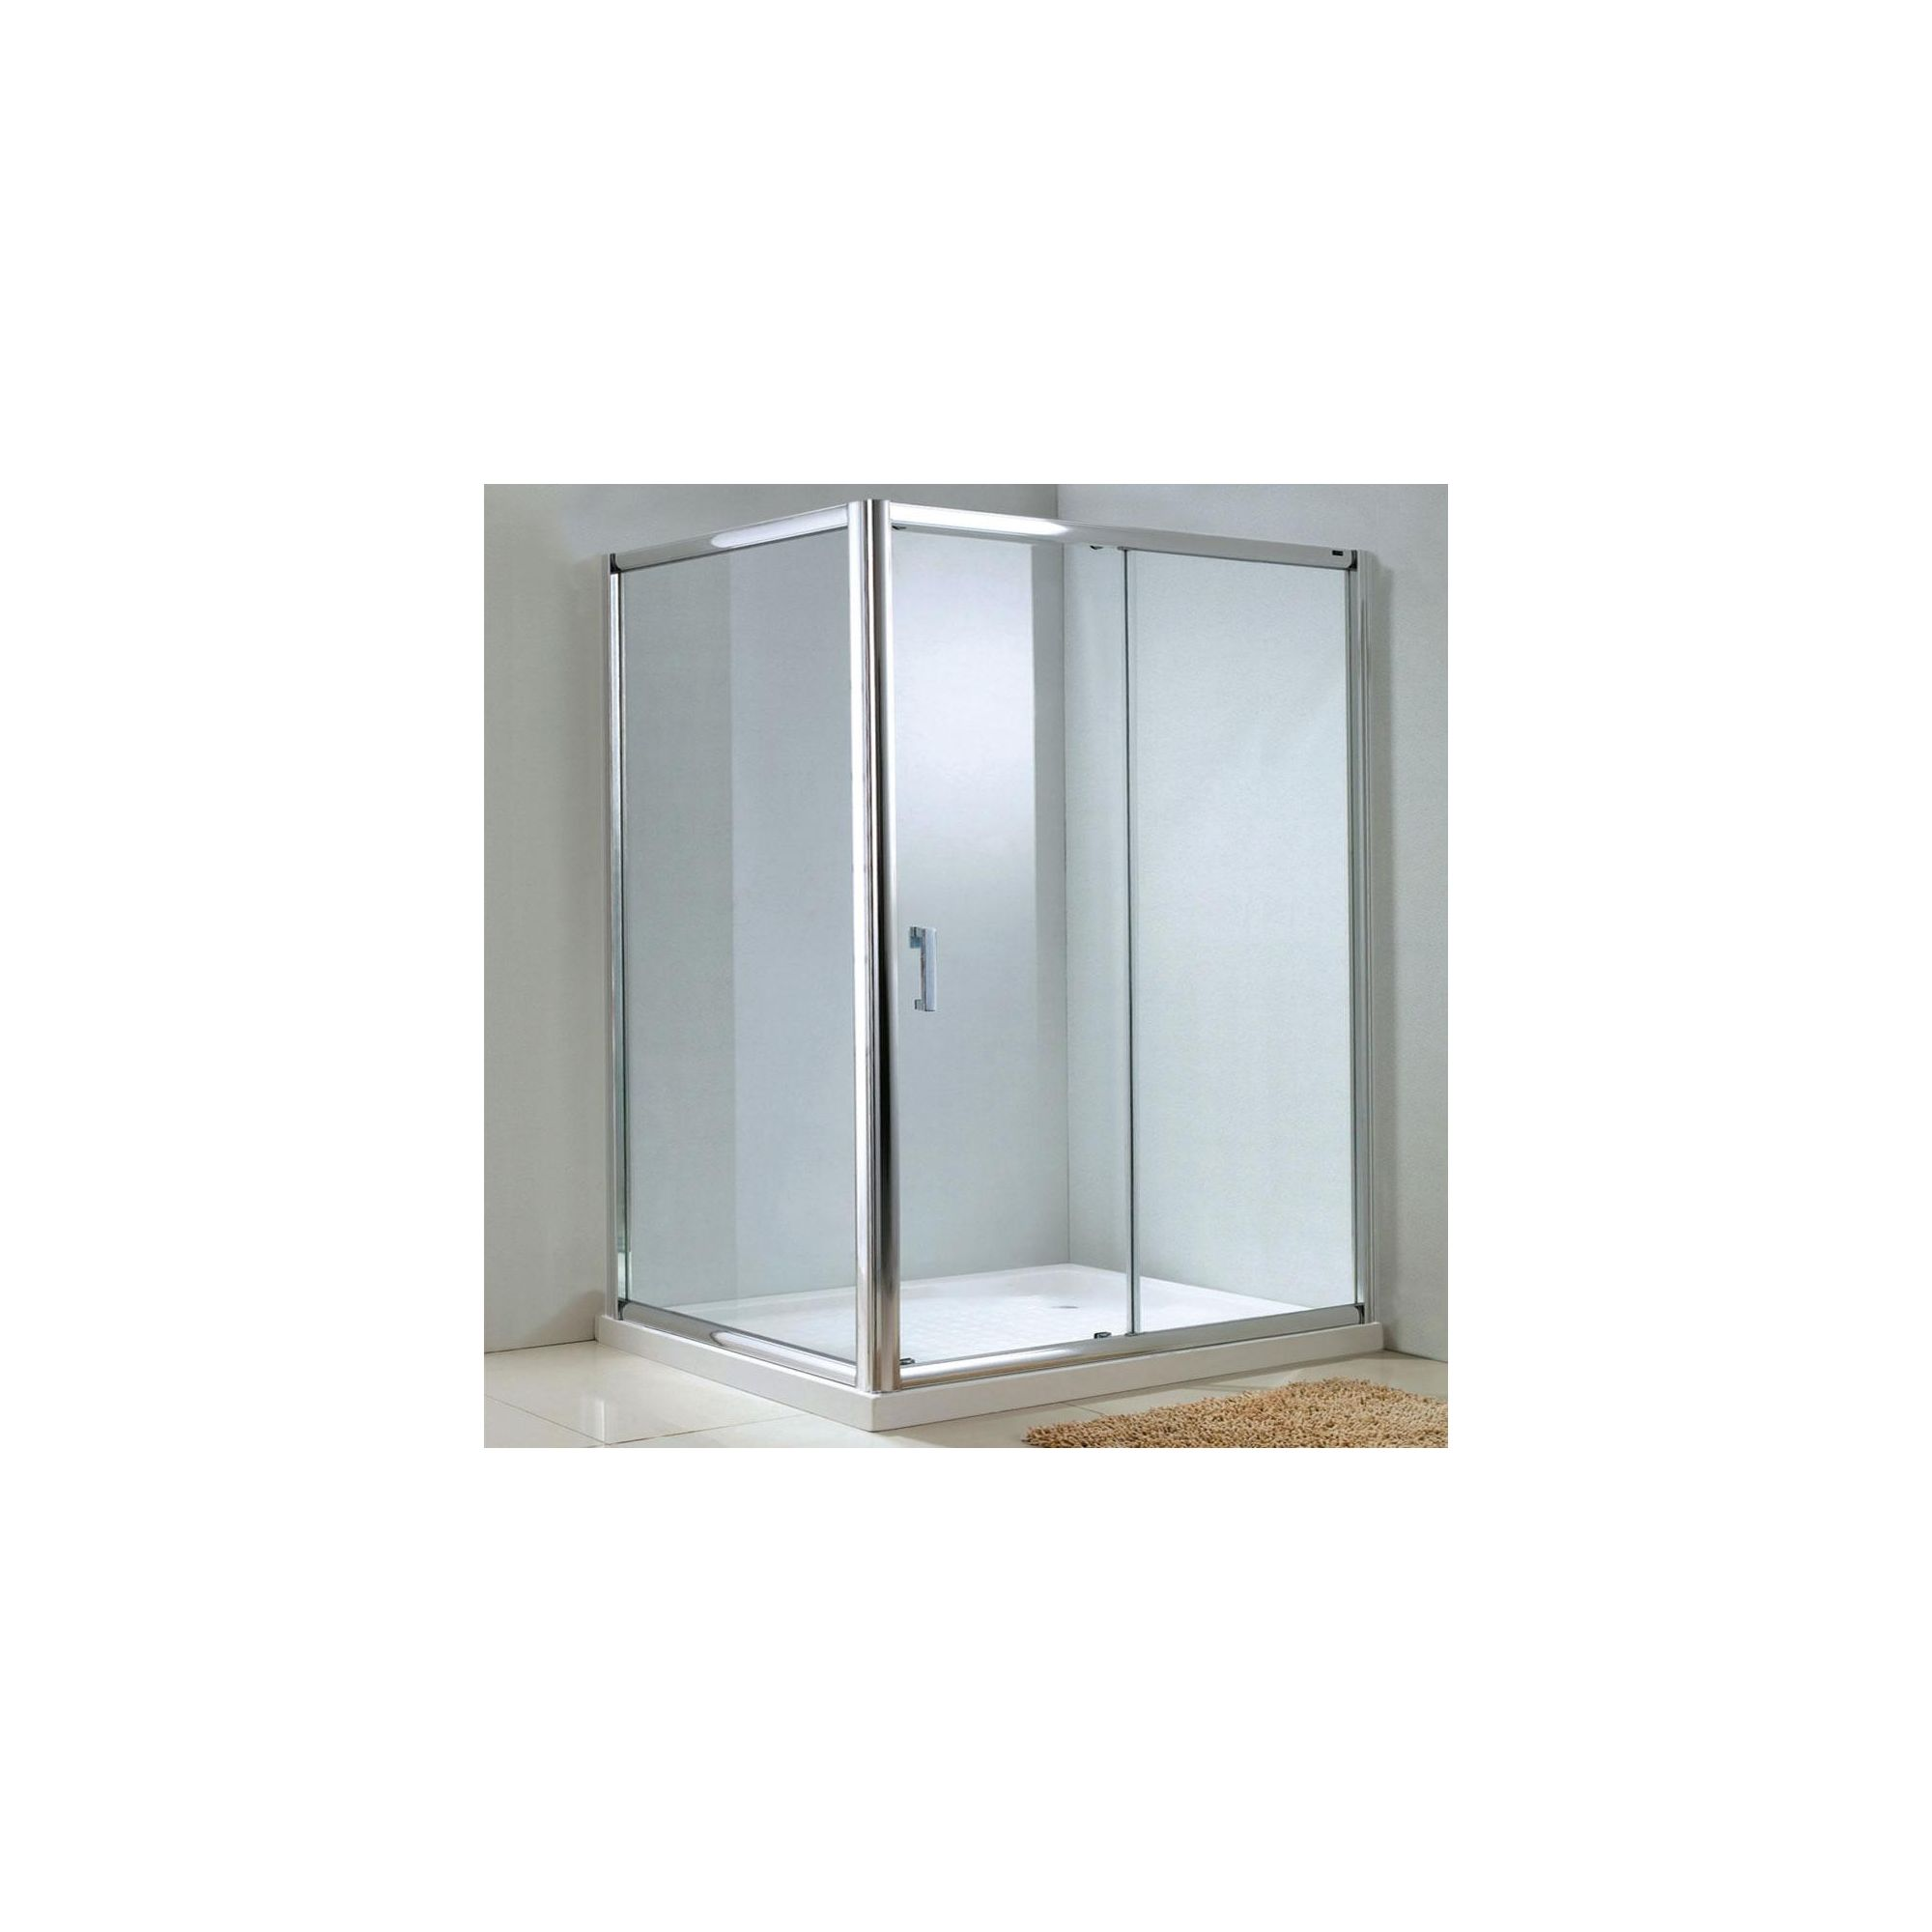 Duchy Style Single Sliding Door Shower Enclosure, 1000mm x 1000mm, 6mm Glass, Low Profile Tray at Tescos Direct